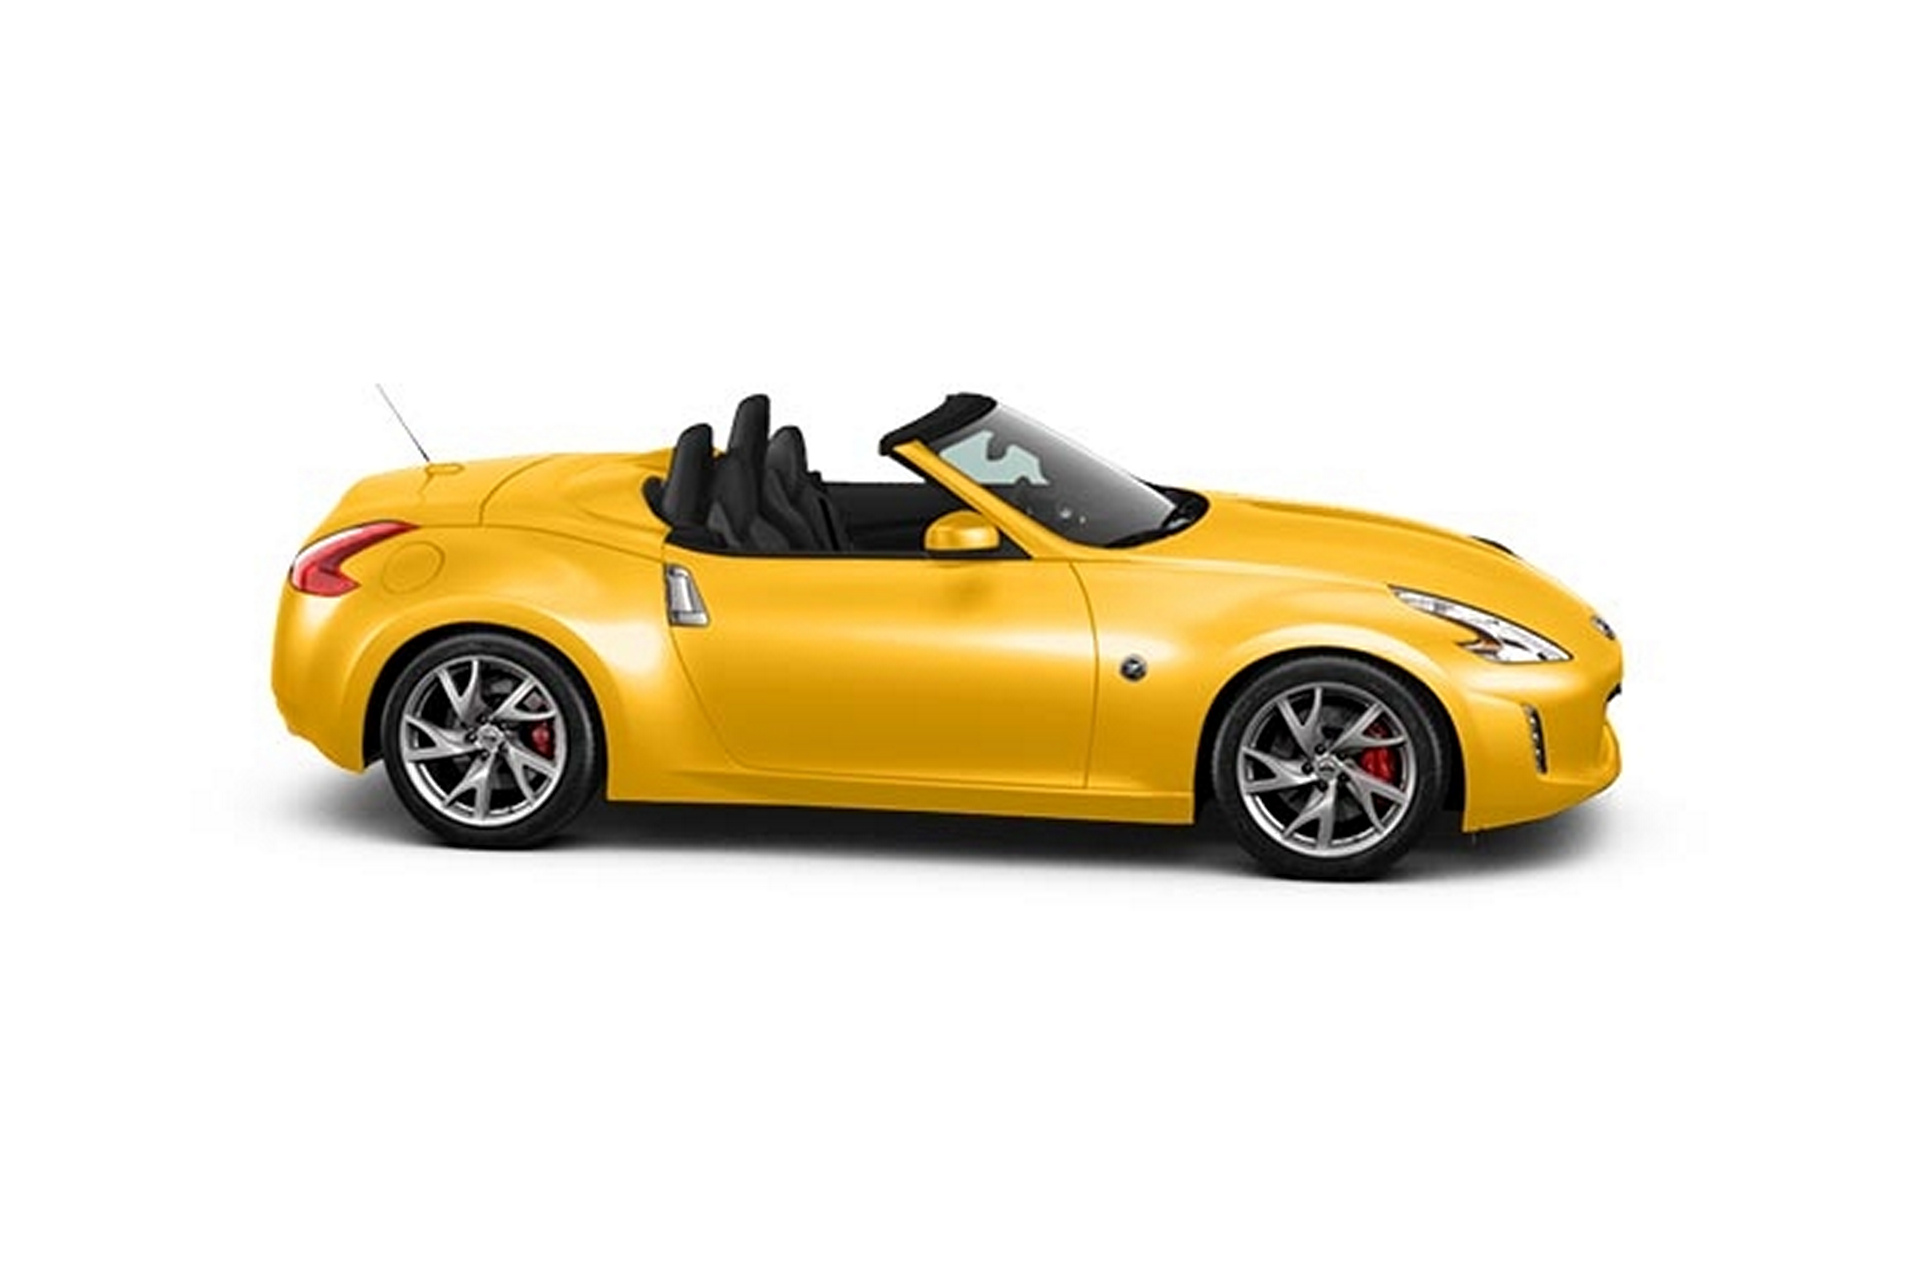 2017 nissan 370z roadster review carrrs auto portal. Black Bedroom Furniture Sets. Home Design Ideas